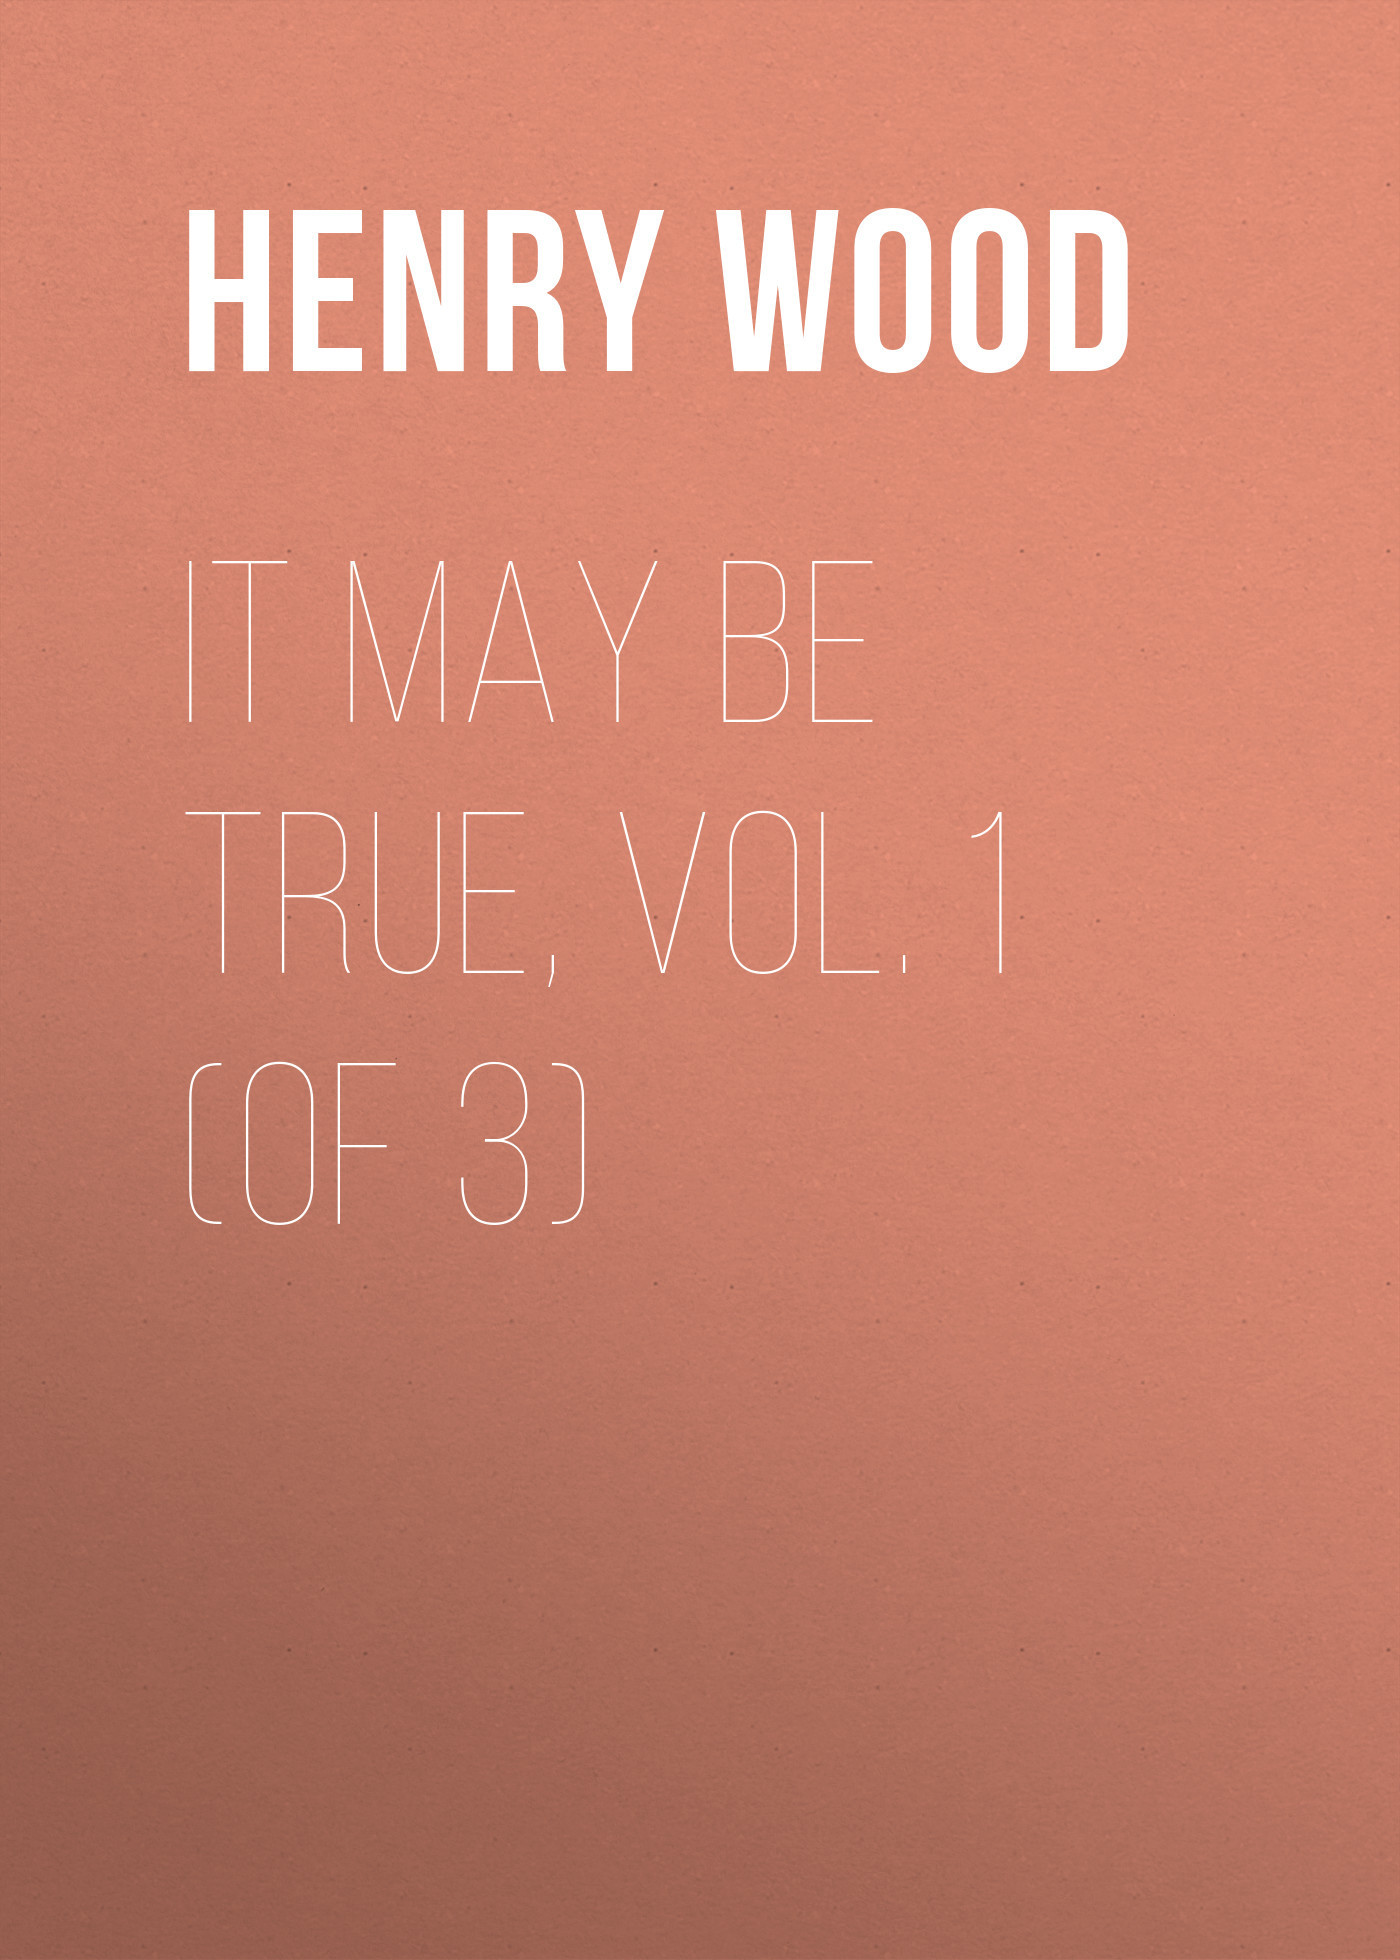 Henry Wood It May Be True, Vol. 1 (of 3) henry wood mildred arkell vol 3 of 3